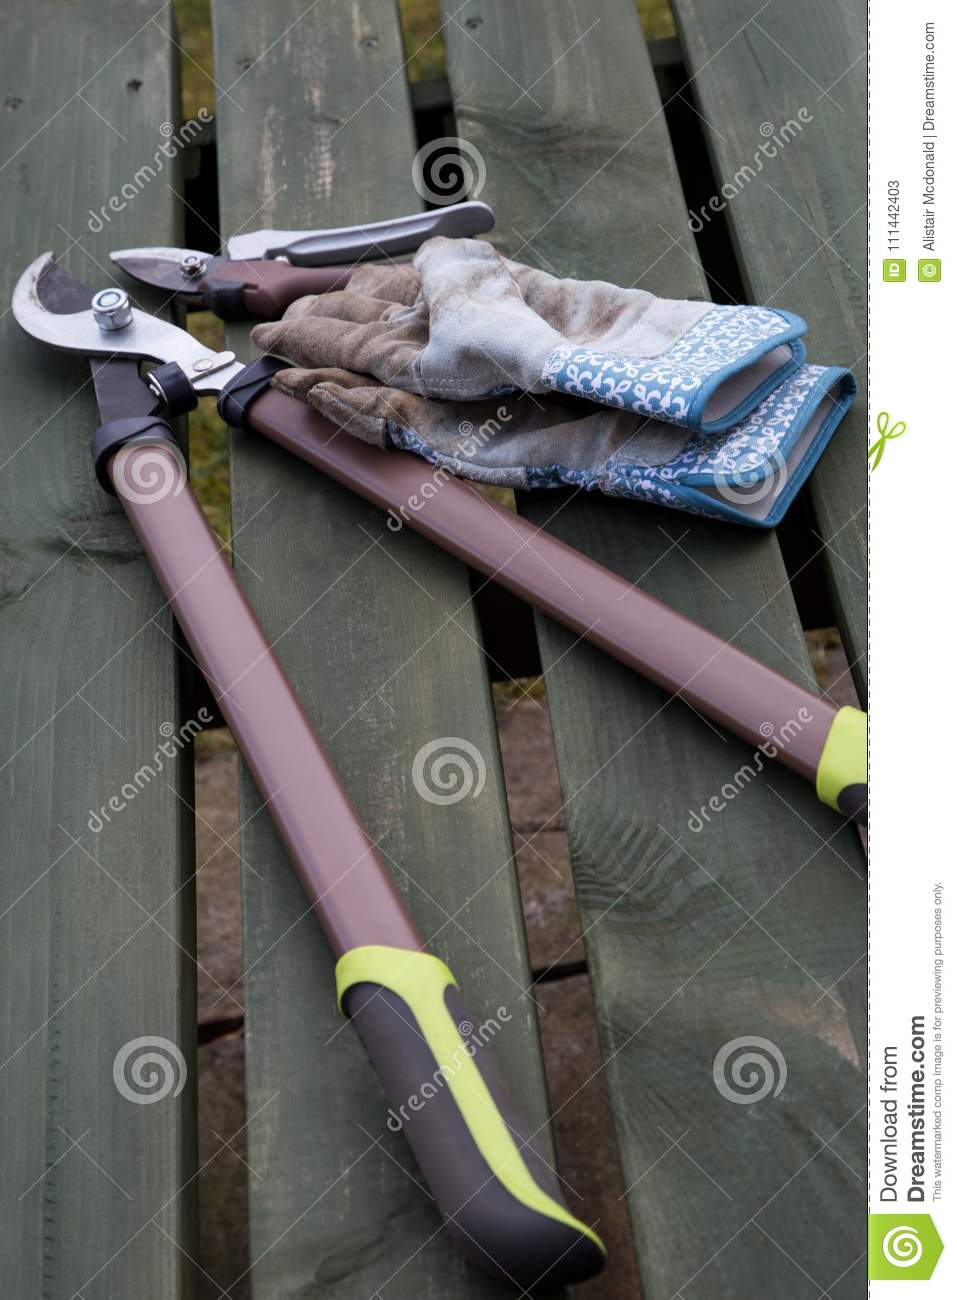 Marvelous Garden Tools And Gloves On A Wooden Bench Stock Image Pdpeps Interior Chair Design Pdpepsorg